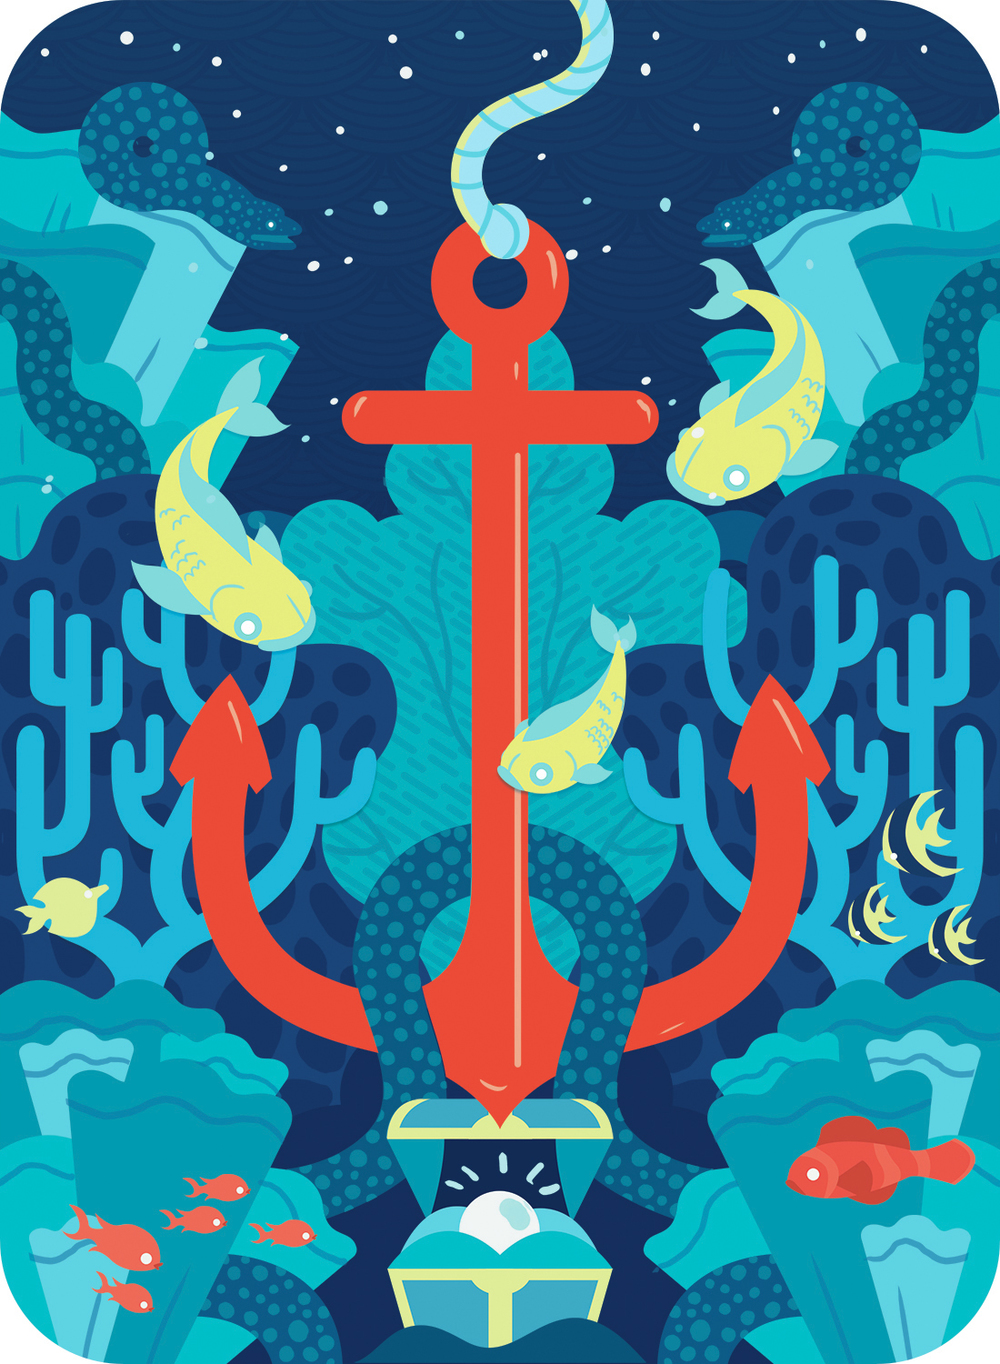 ESALAZAR-FISH N SHIPS-PLAYING CARD BACK RED ANCHOR copy.jpg